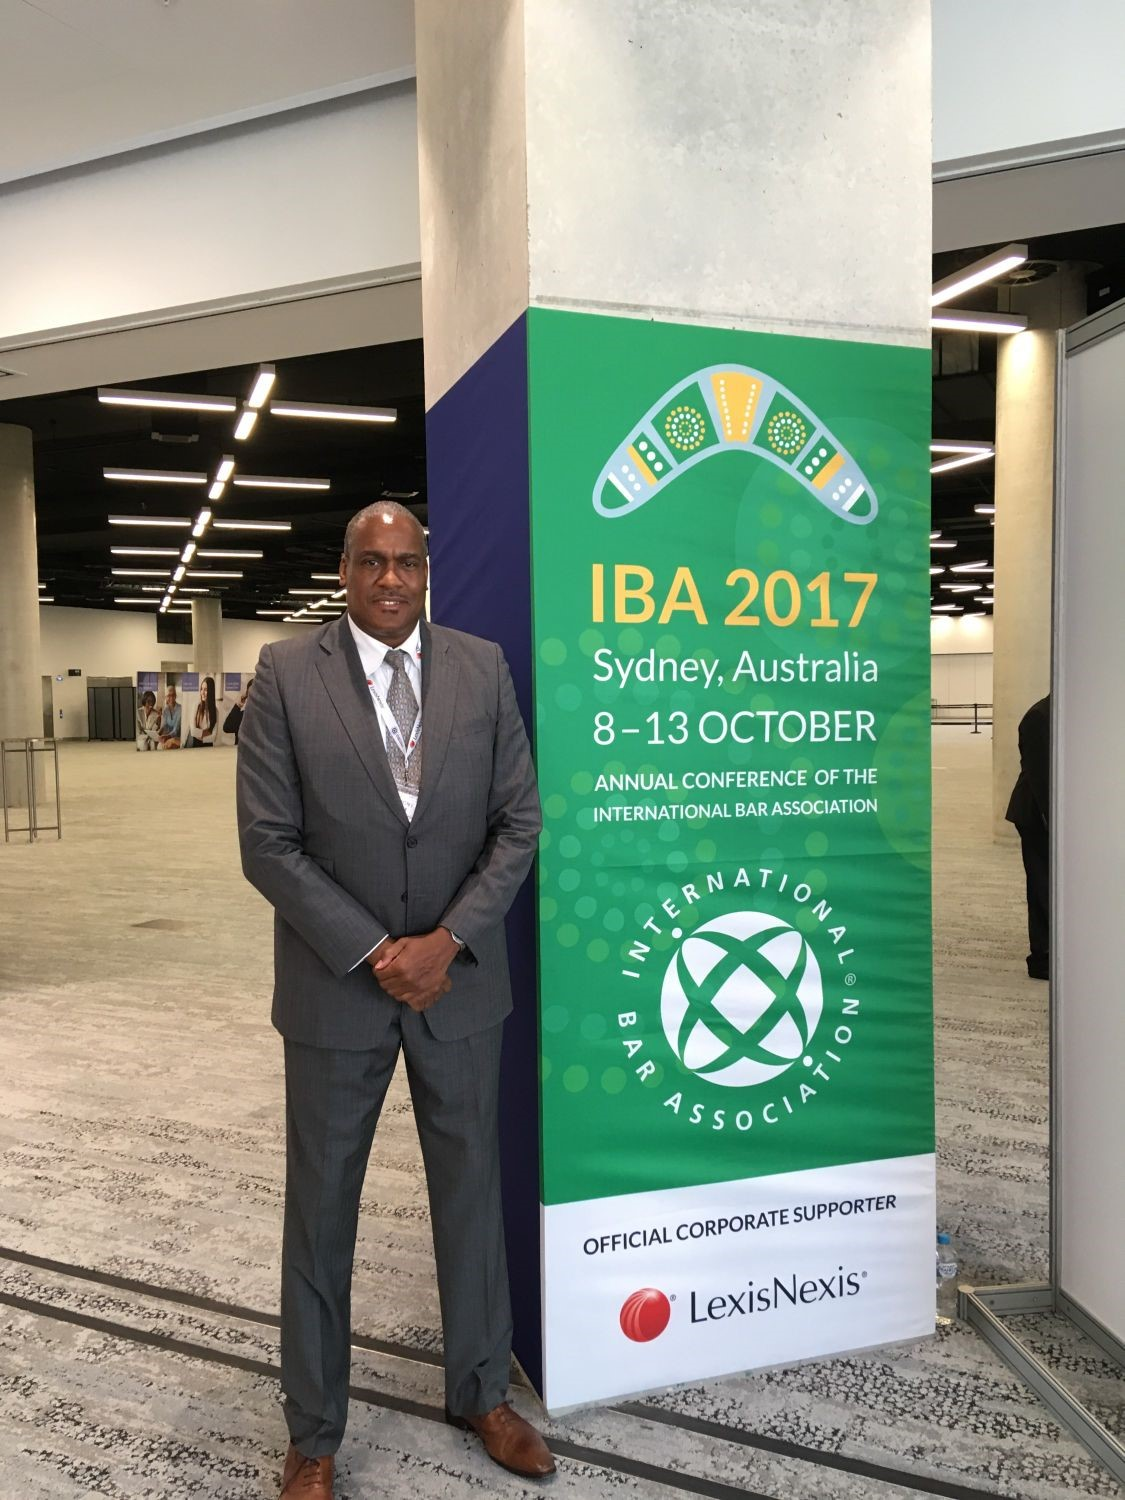 Dr. Tony Rhem at the IBA Conference in Sydney, Australia